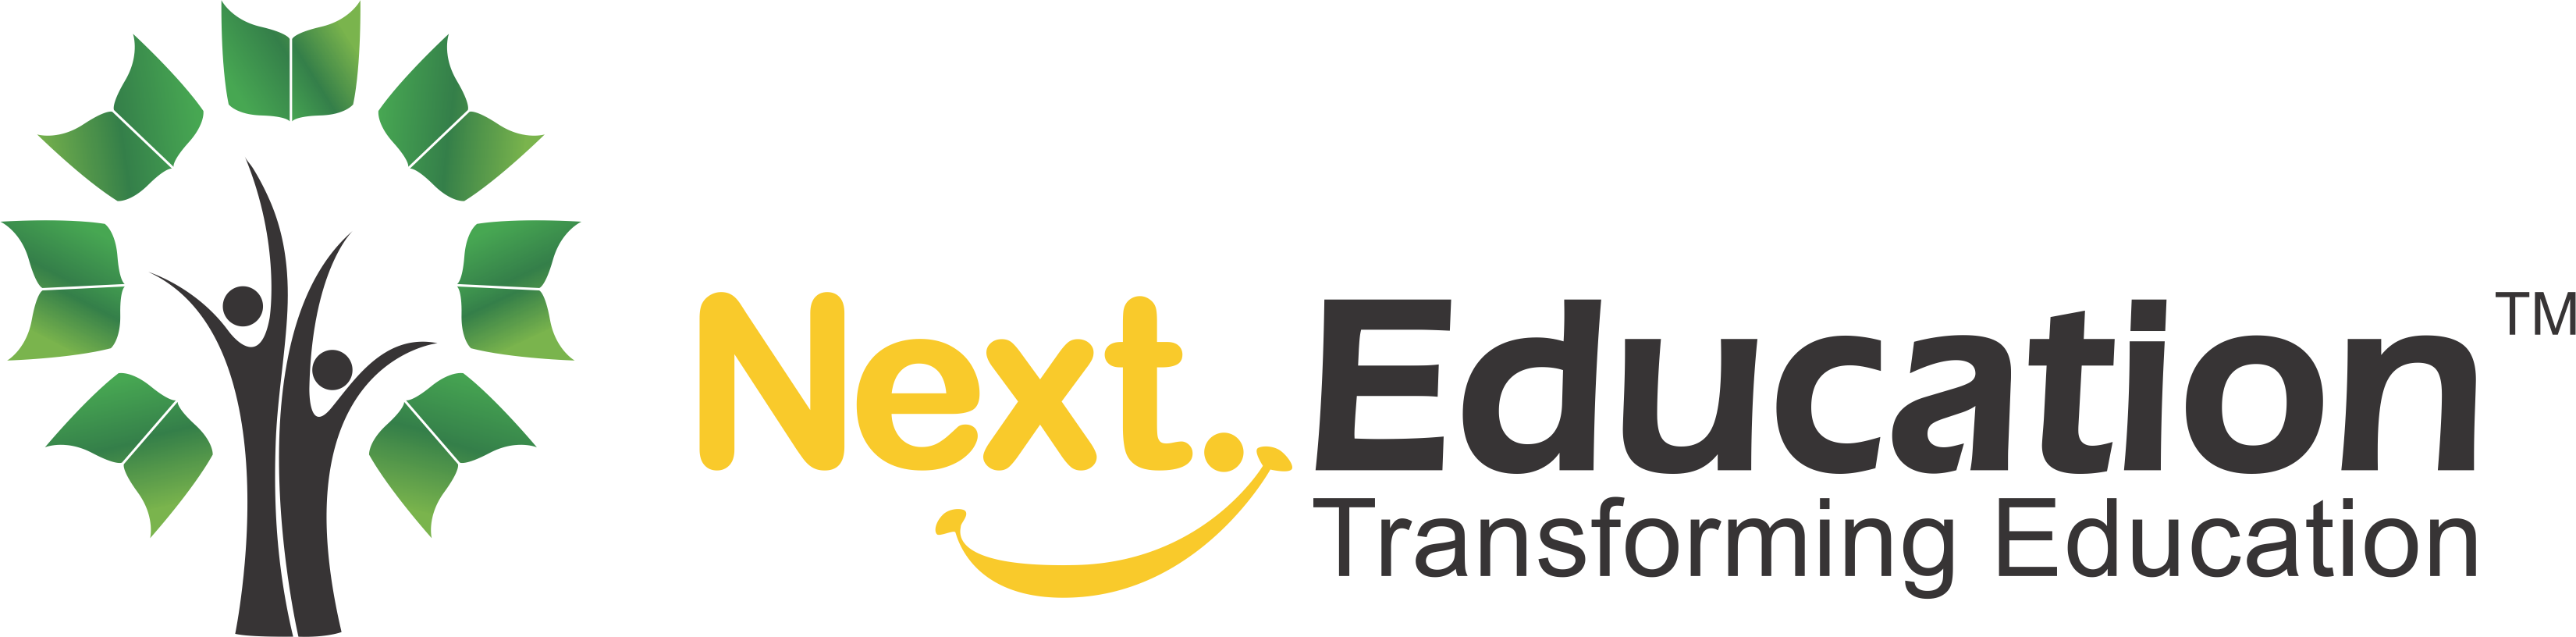 Next Education Pvt. Ltd.